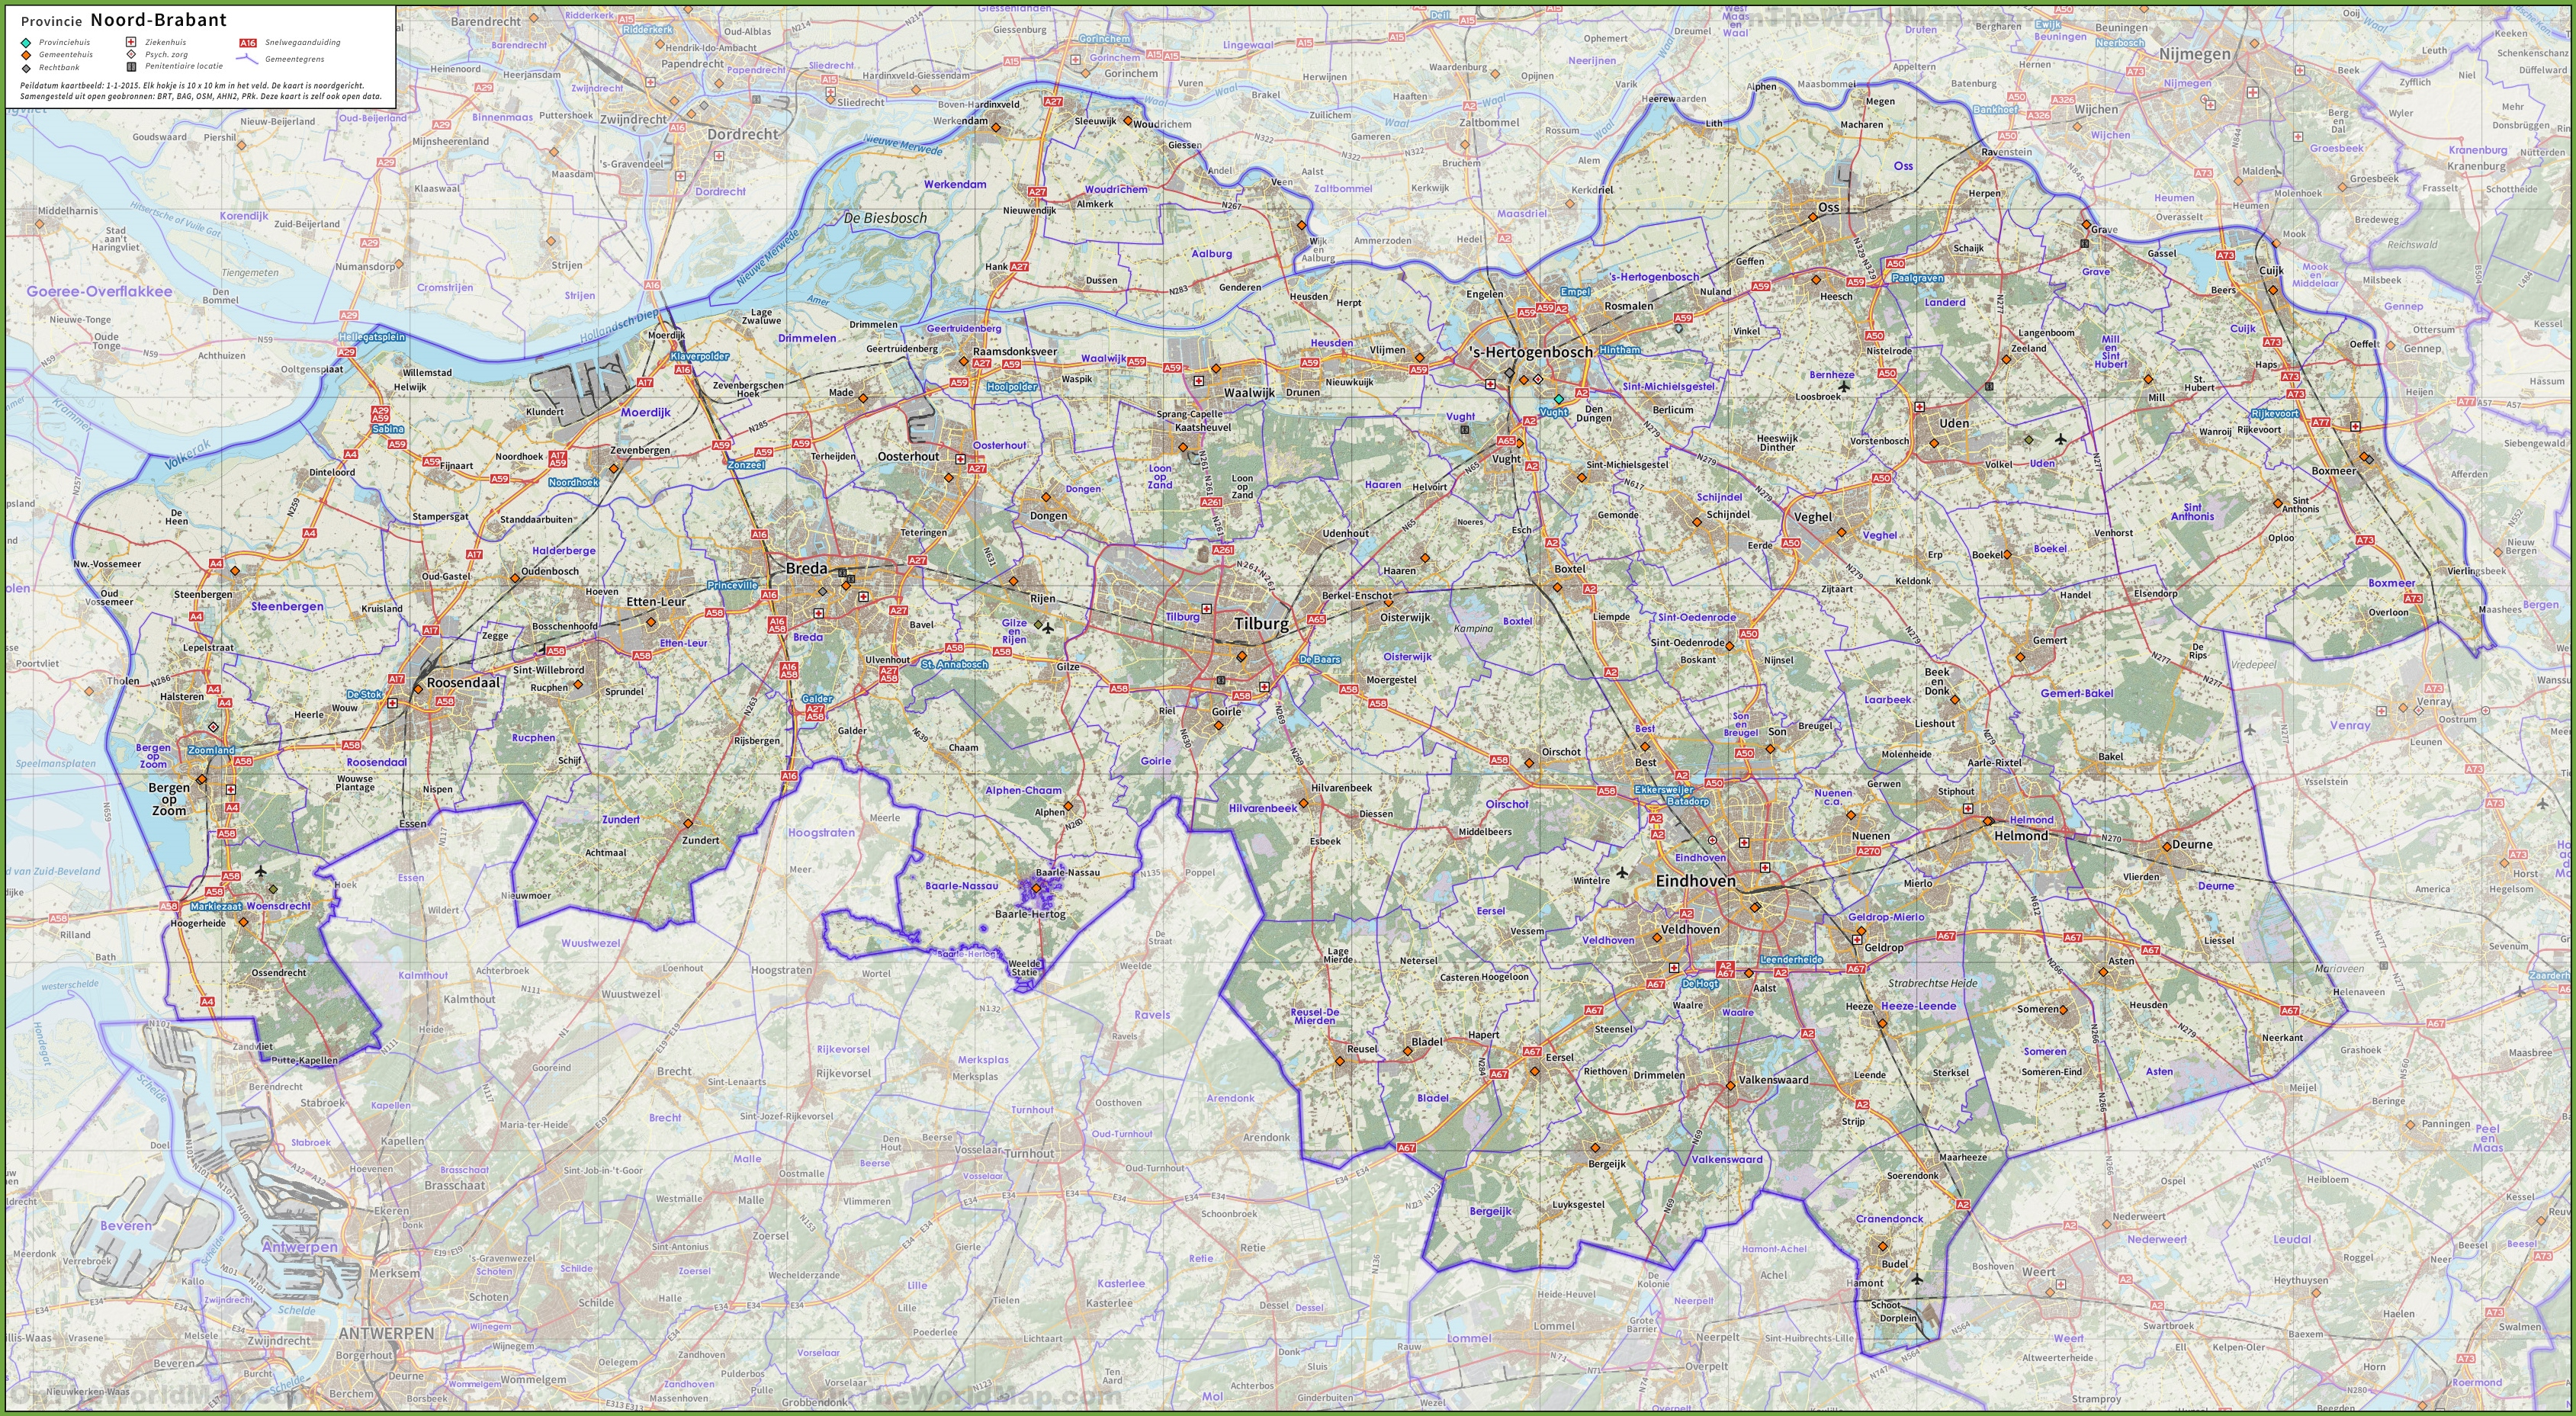 North Brabant road map